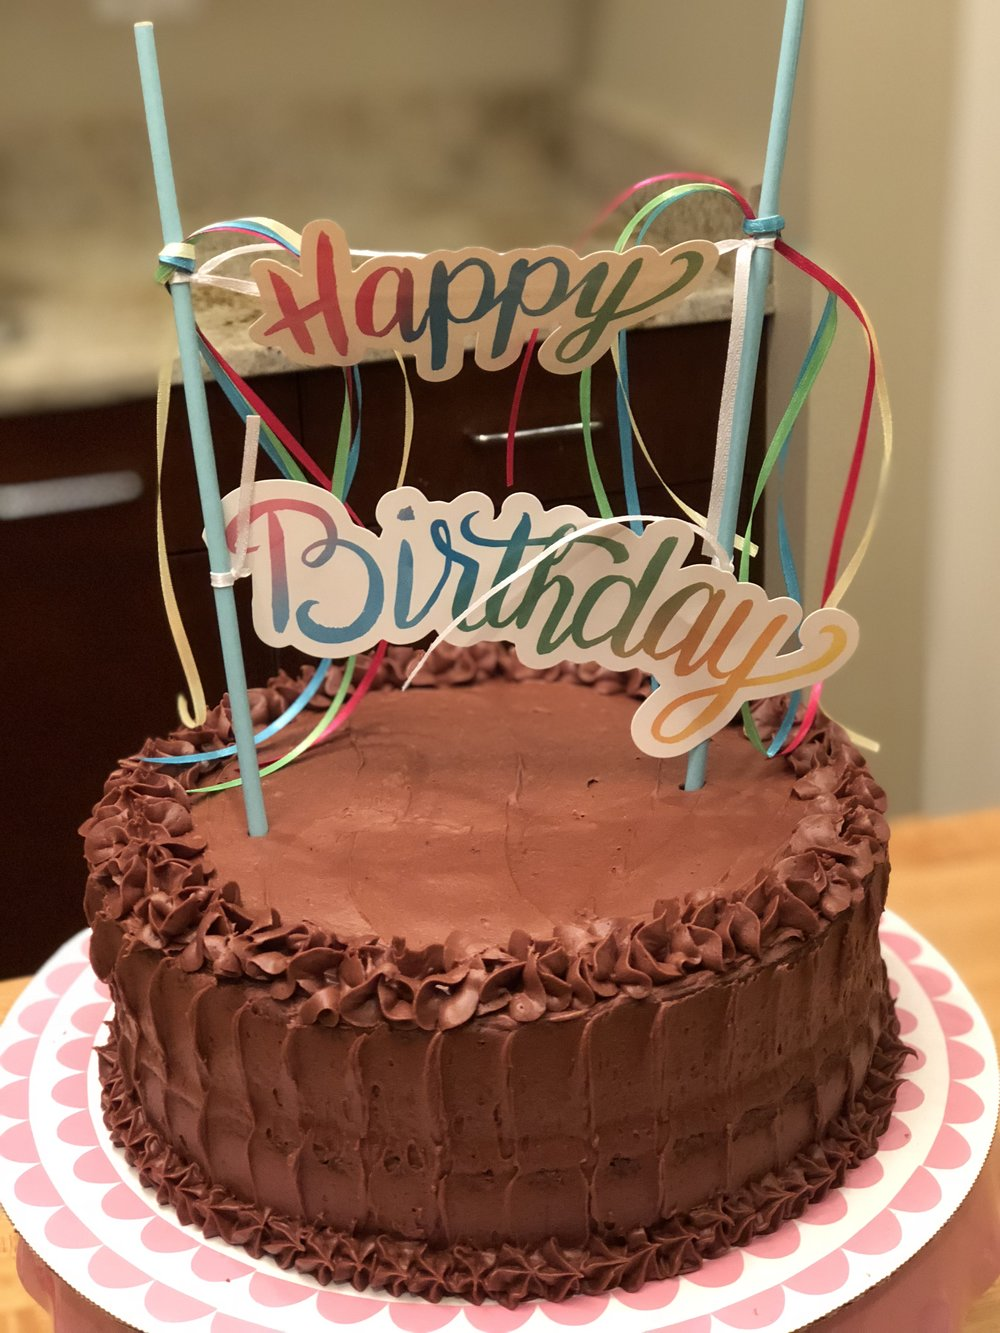 Gluten & Dairy Free White or Chocolate Occasion Cake with Vanilla or Chocolate DF Buttercream Frosting  $65 Two-Layer 8 inch Round